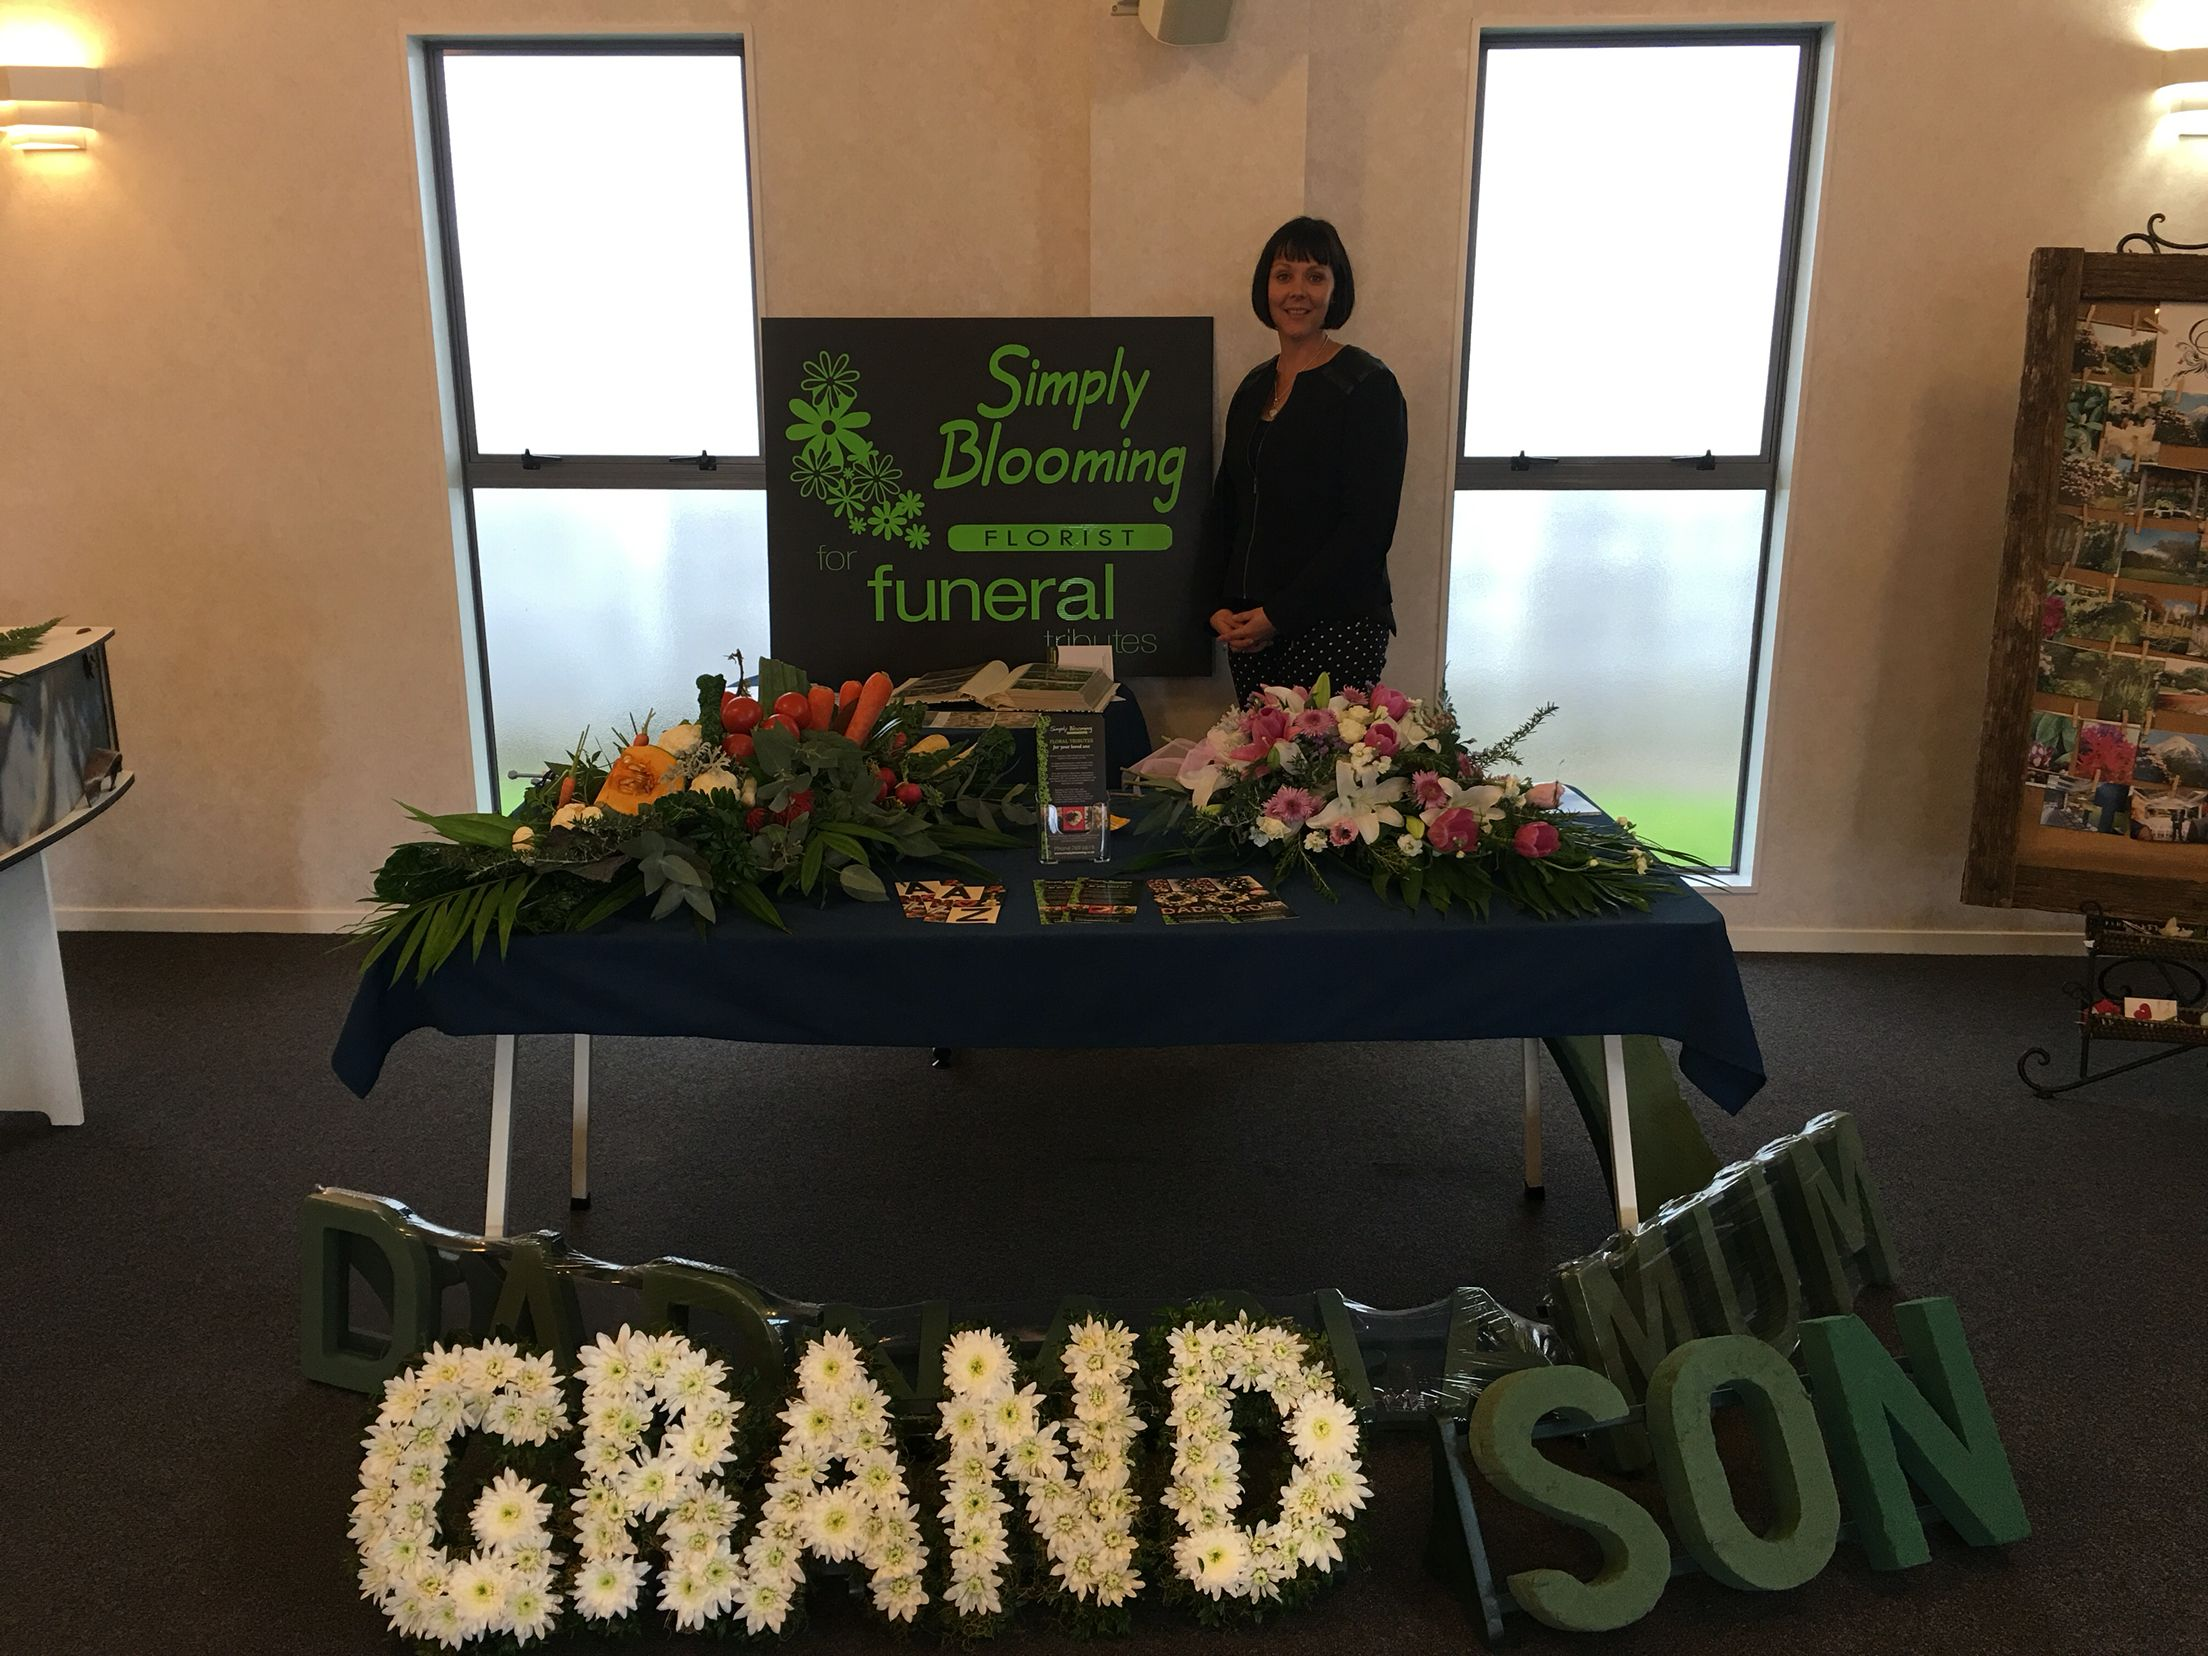 Florist leisha from simply blooming shows visitors the